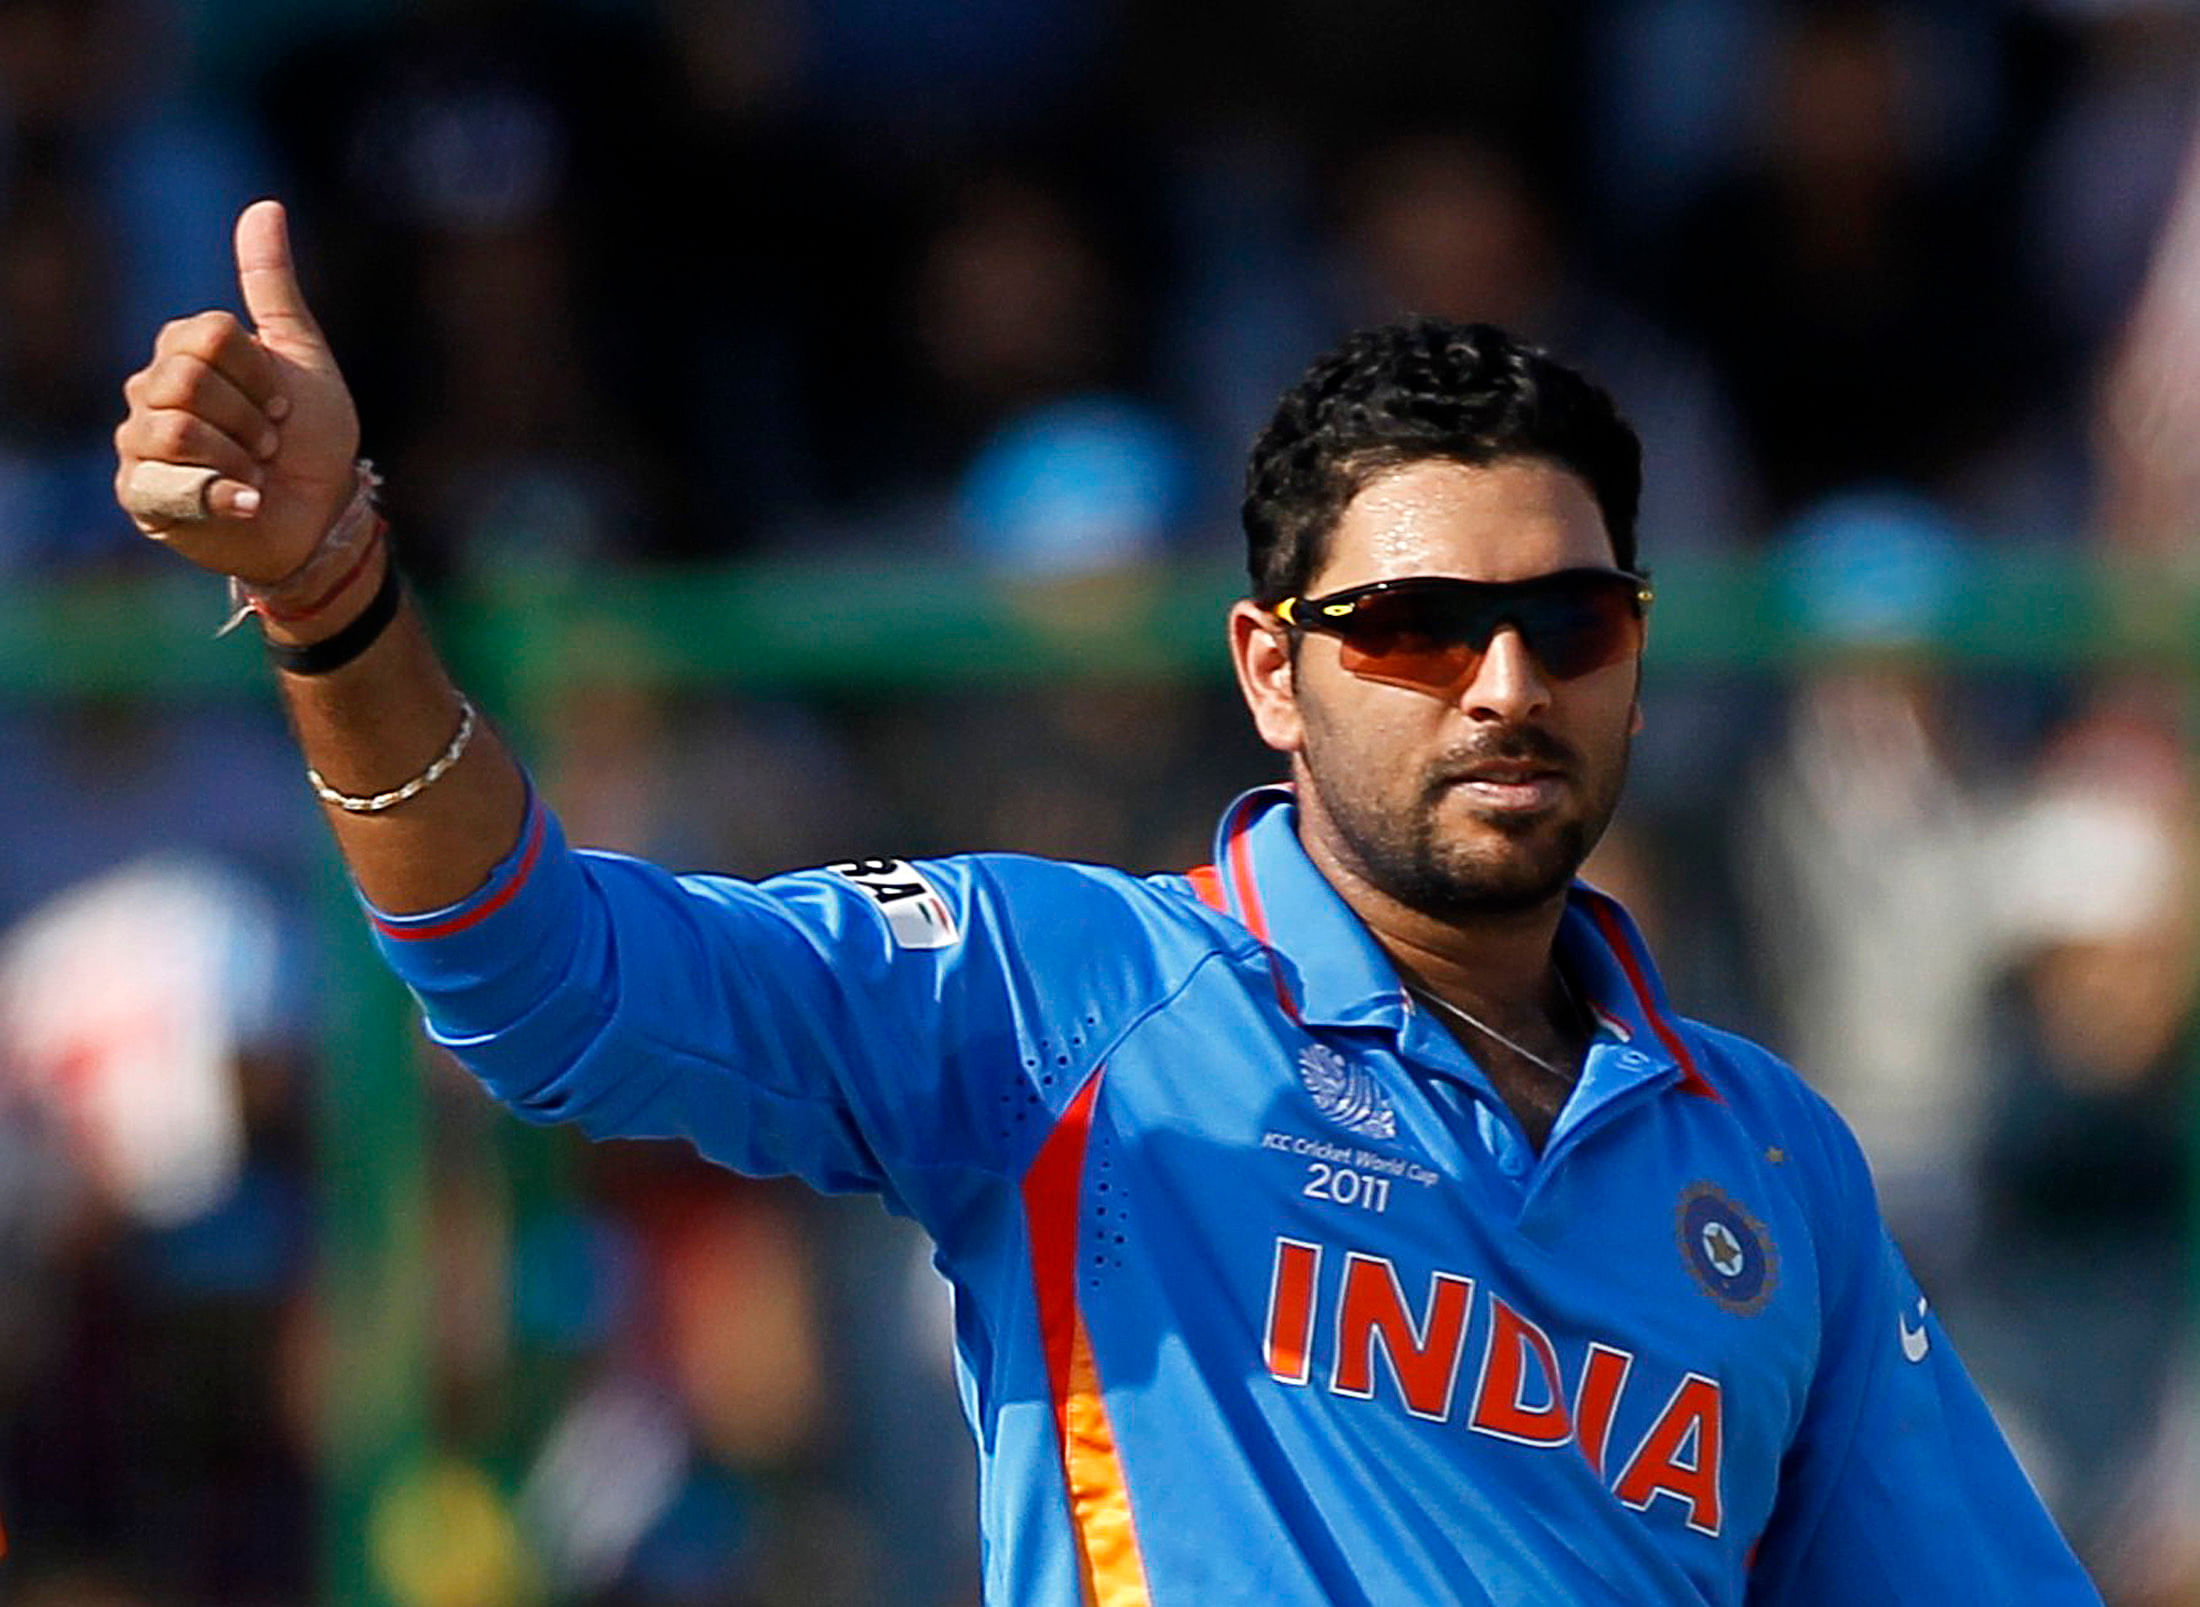 Indian Cricket Team Batsman Yuvraj Singh: Yuvraj Singh Backs Indian Cricket Team To Retain The World Cup